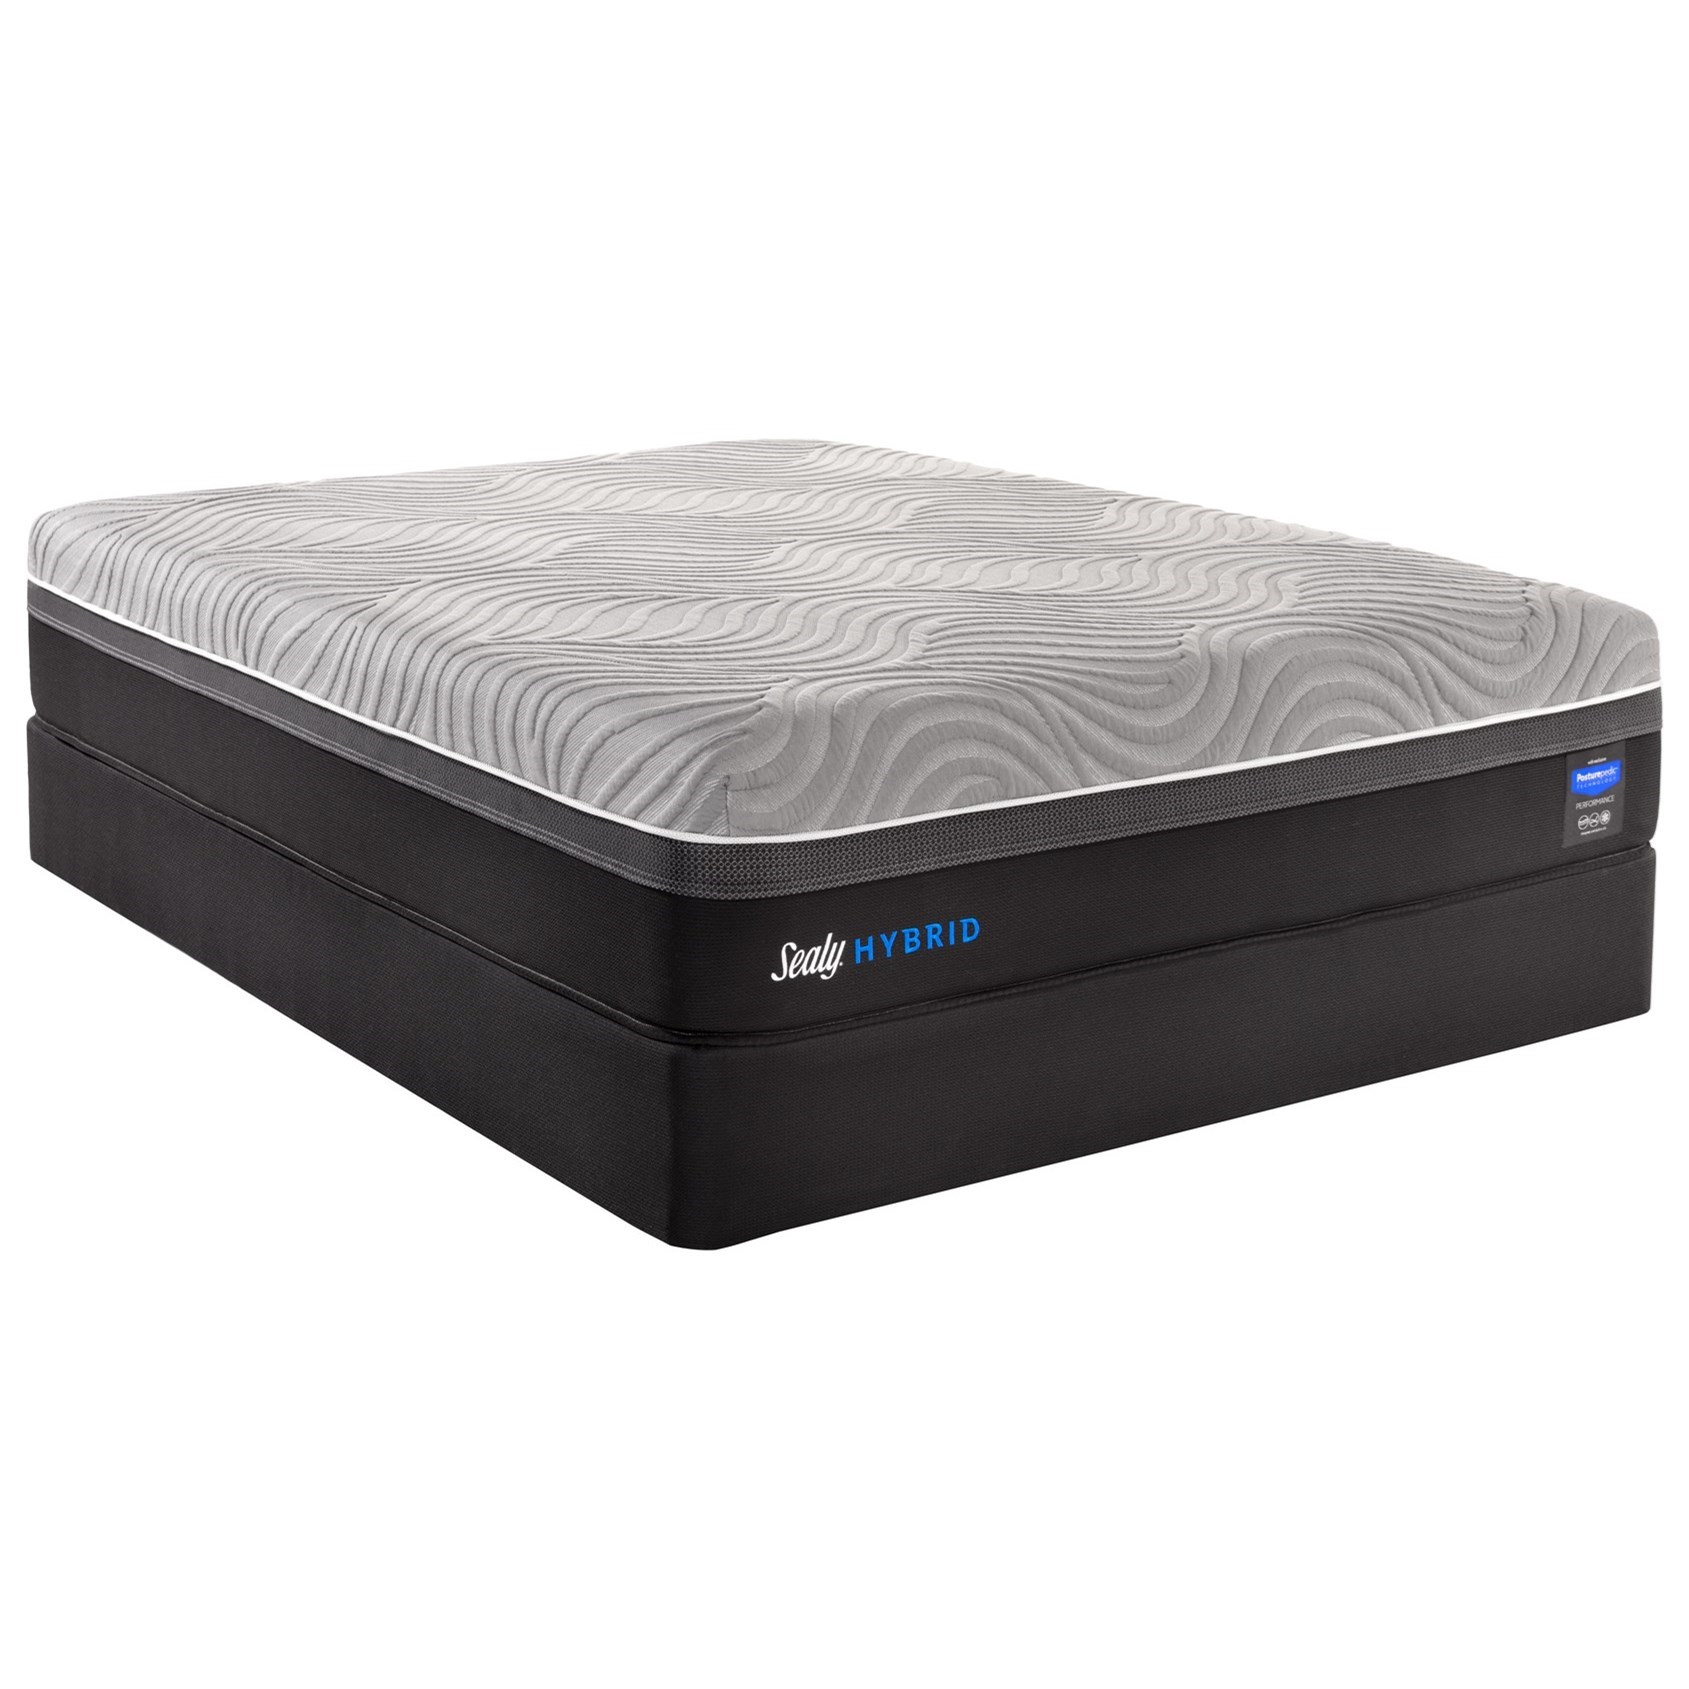 "Queen Plush Performance Hybrid Mattress and 5"" Low Profile StableSupport Foundation"